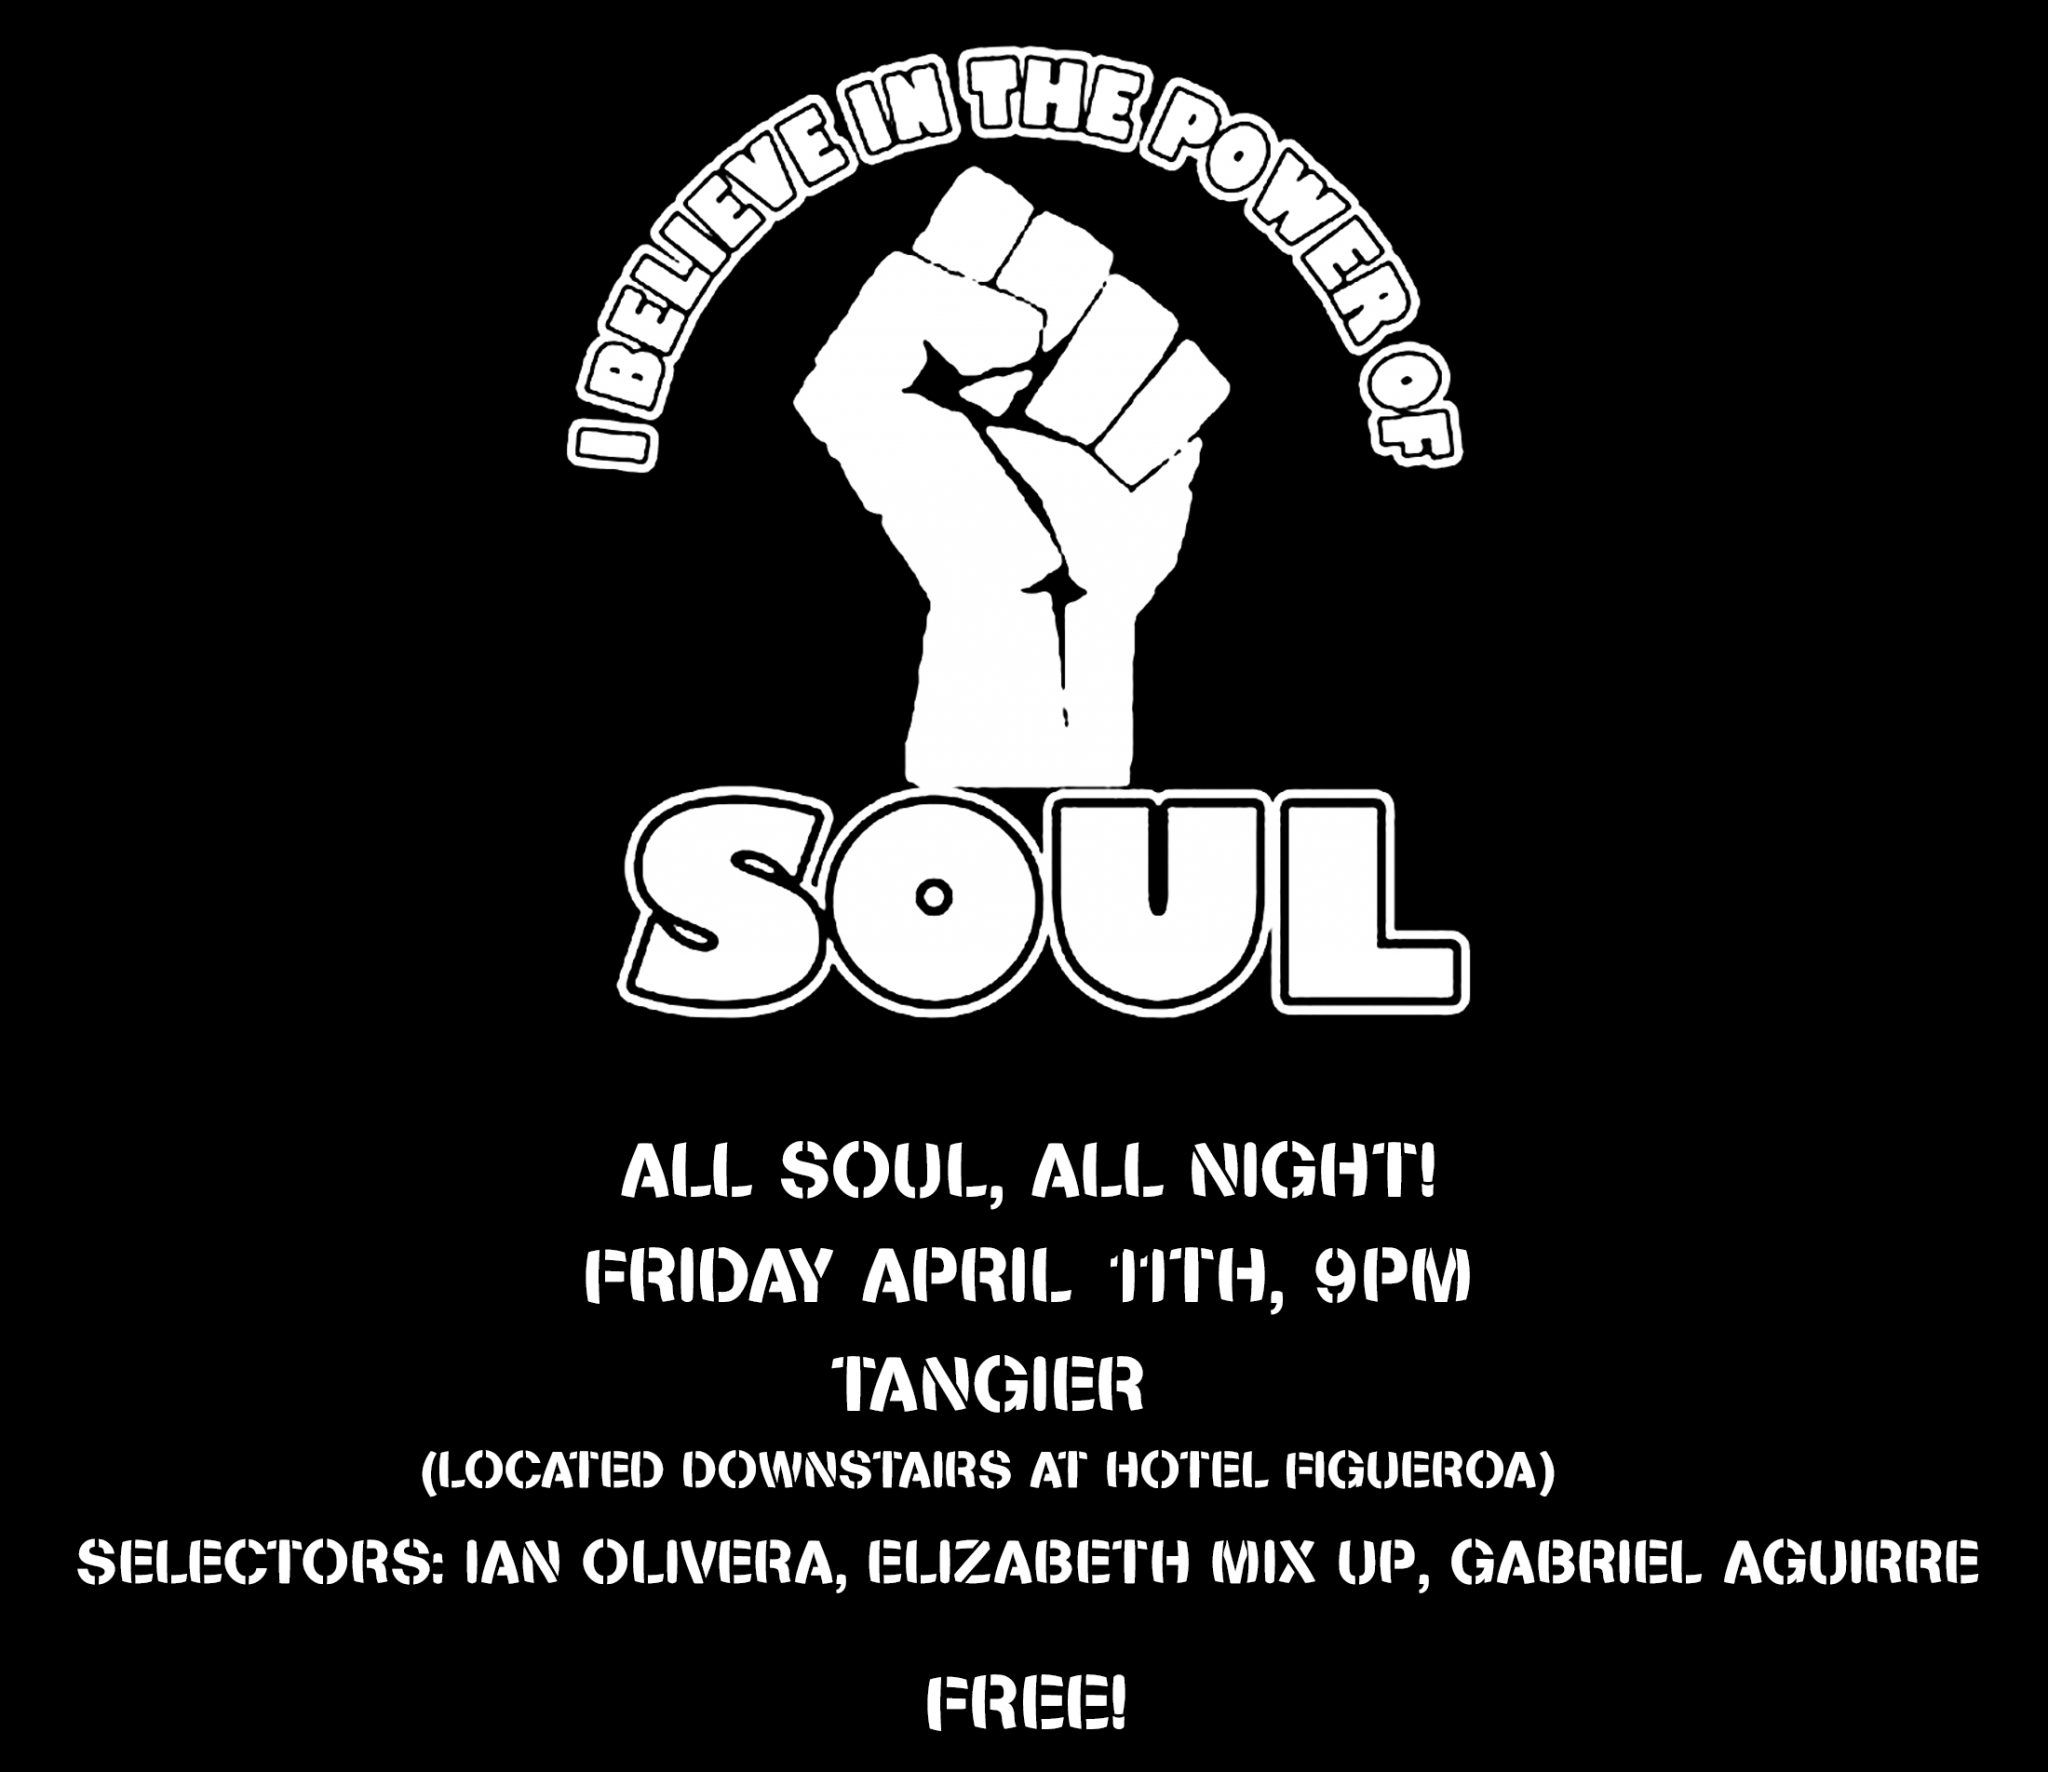 All Soul, All Night